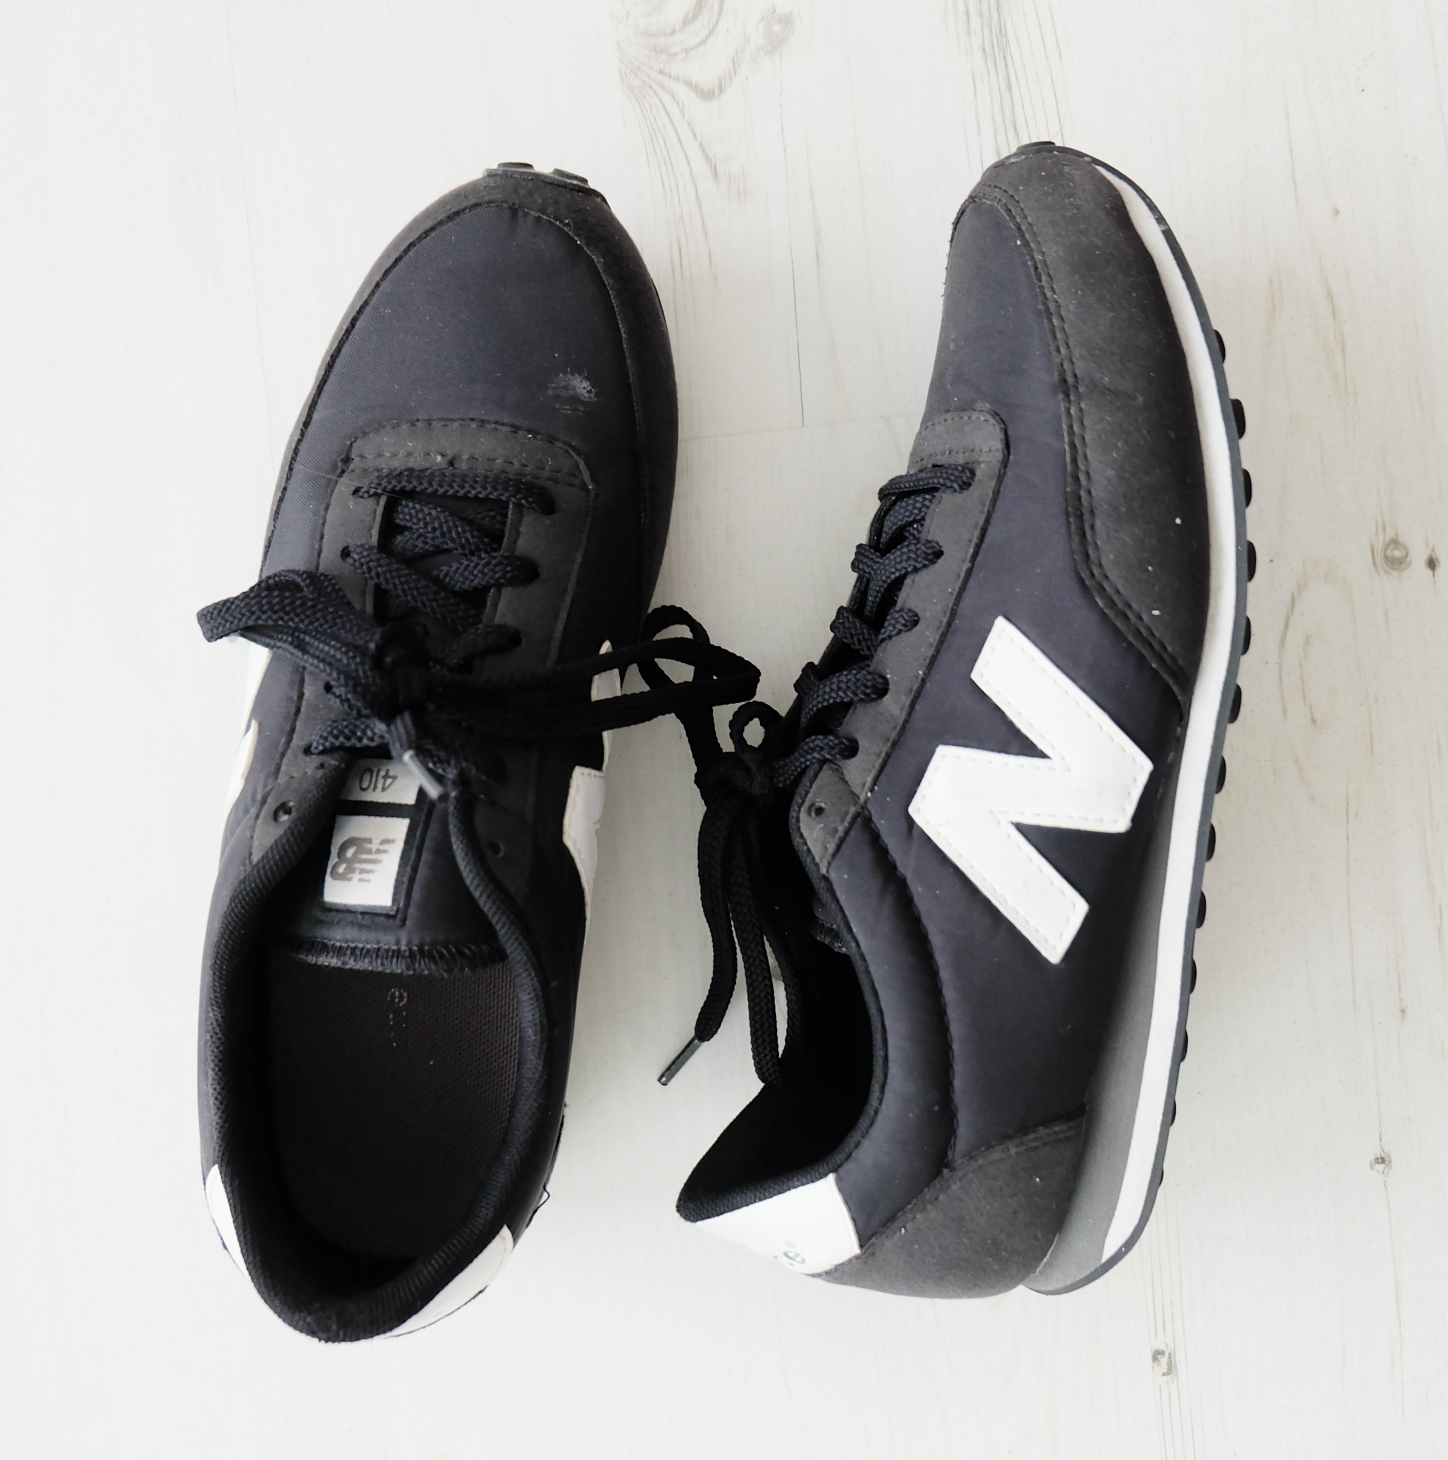 black 410 new balance, 410 new balance review